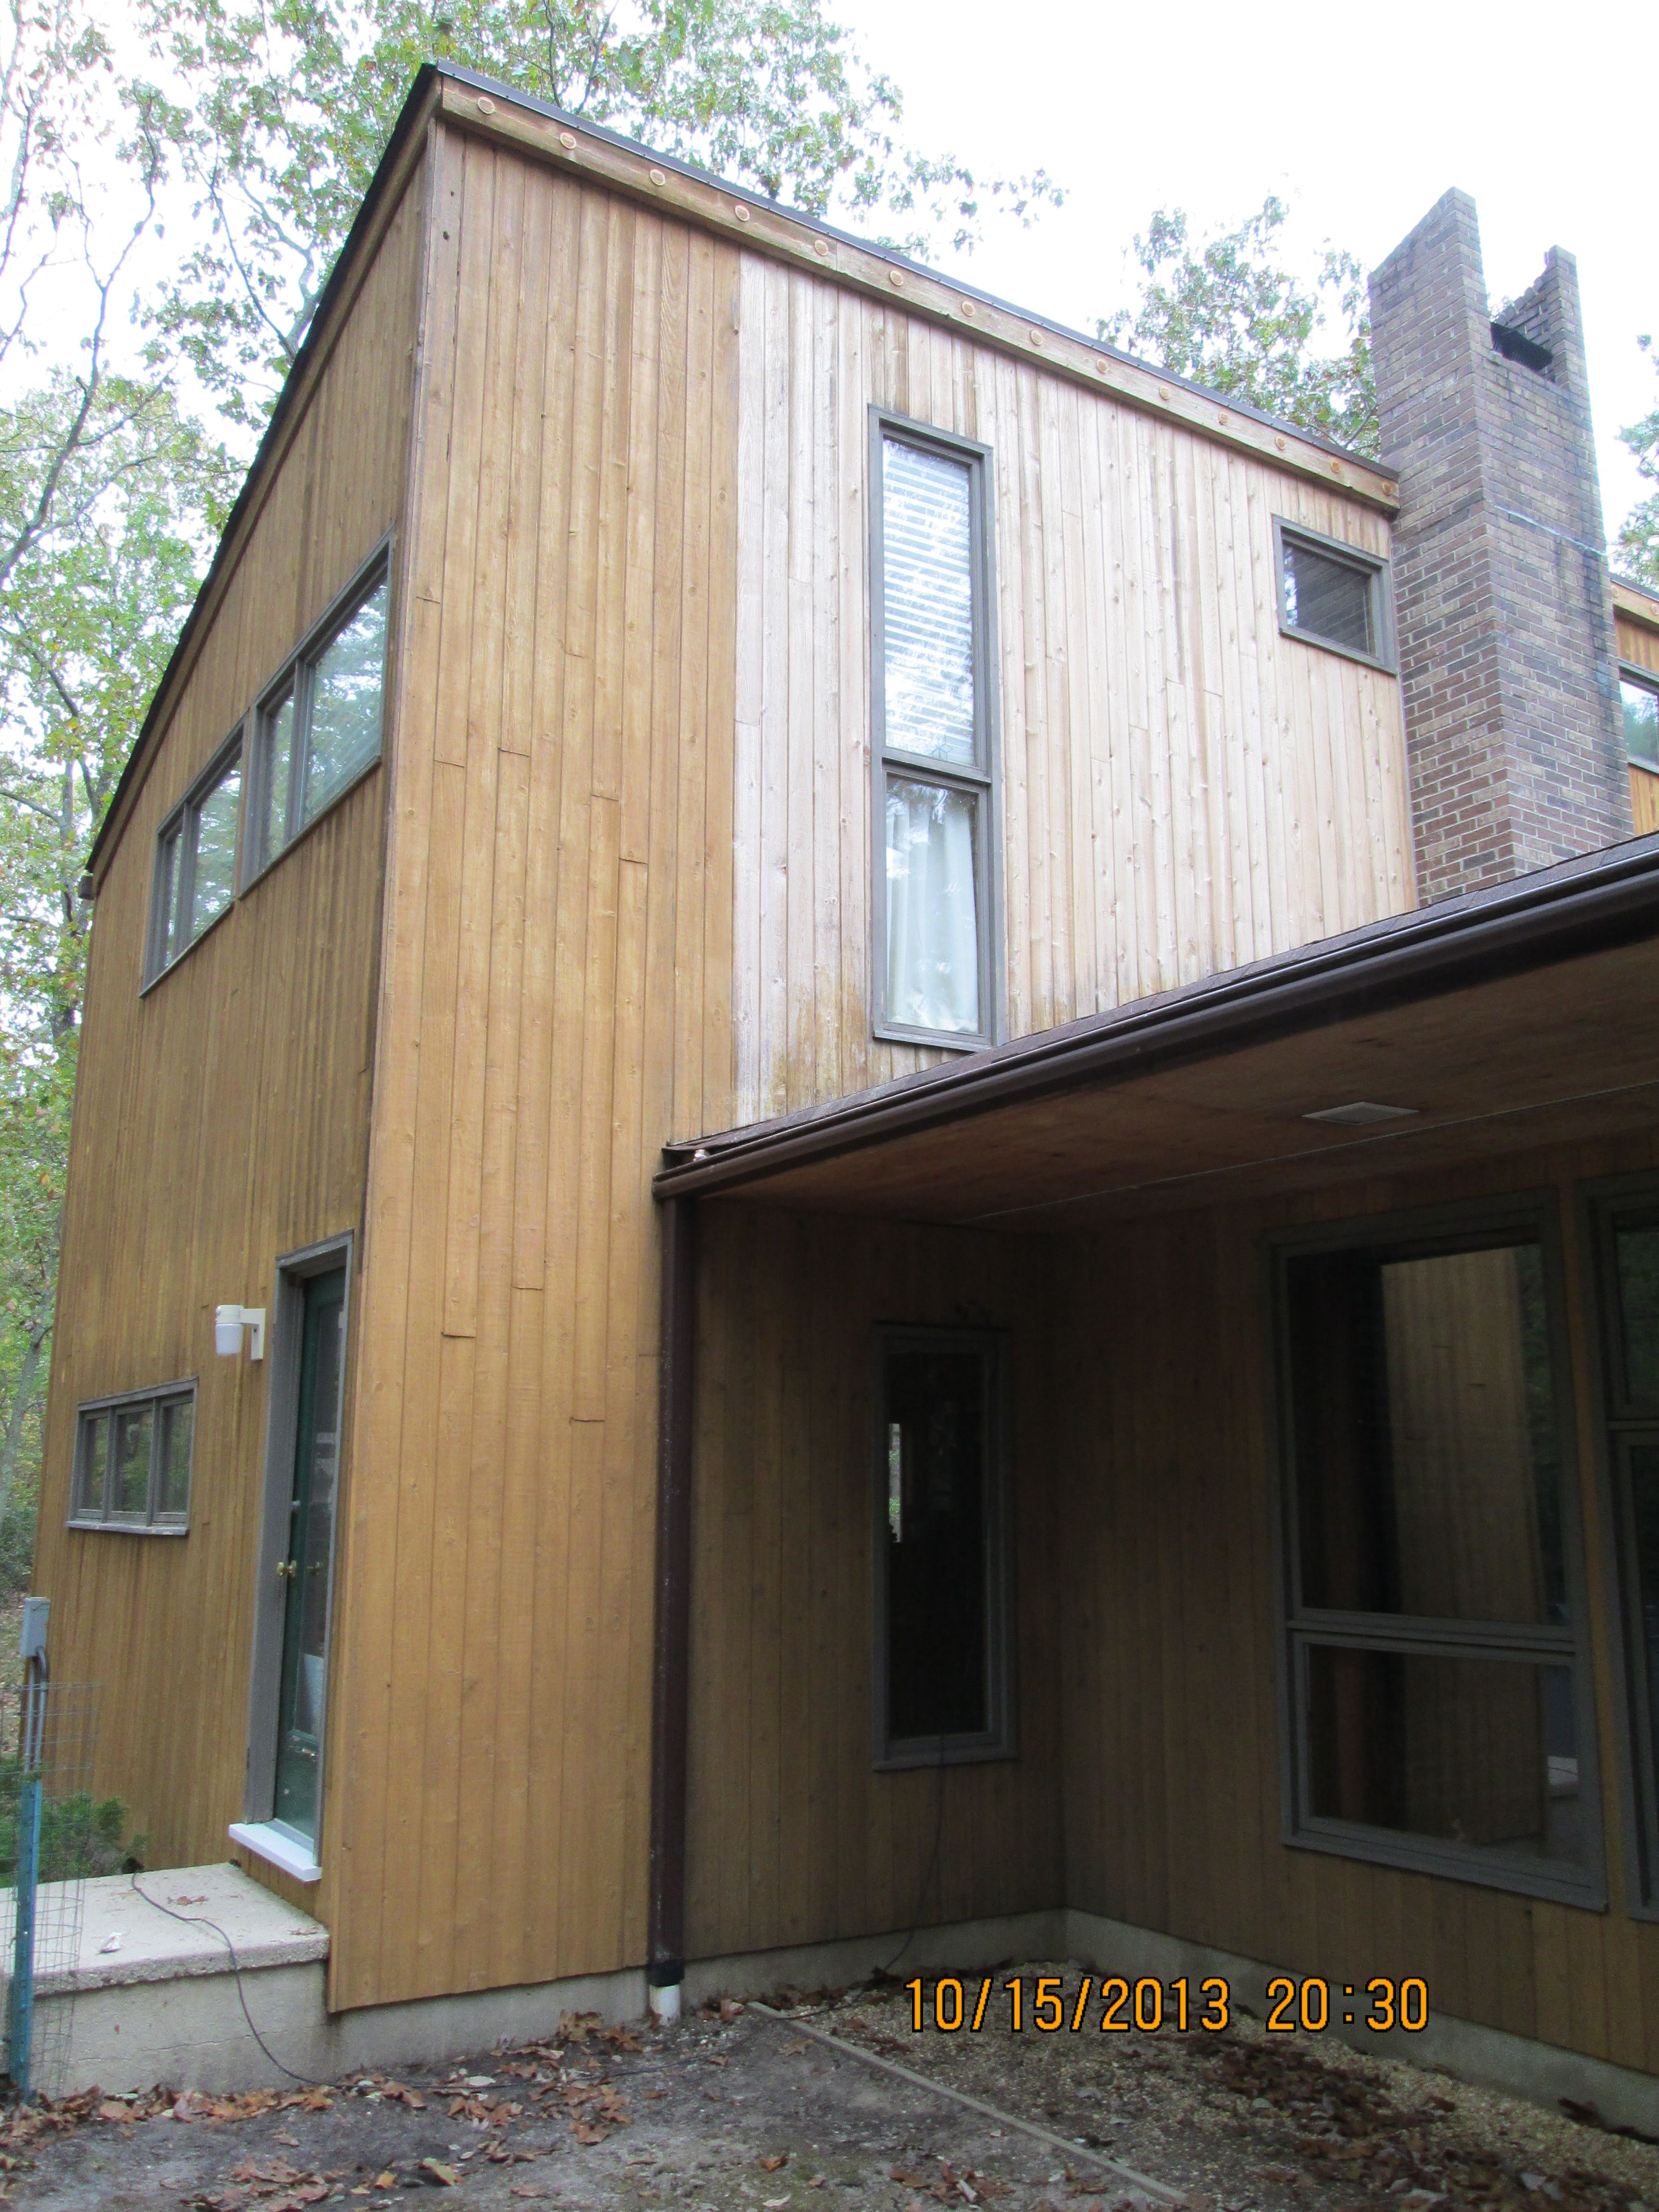 Wow Look At The Difference Deck Restoration Plus Deck Wood Stain Makes On This Cedar Sided Wood Home House In The Woods Deck Restoration Cedar Siding